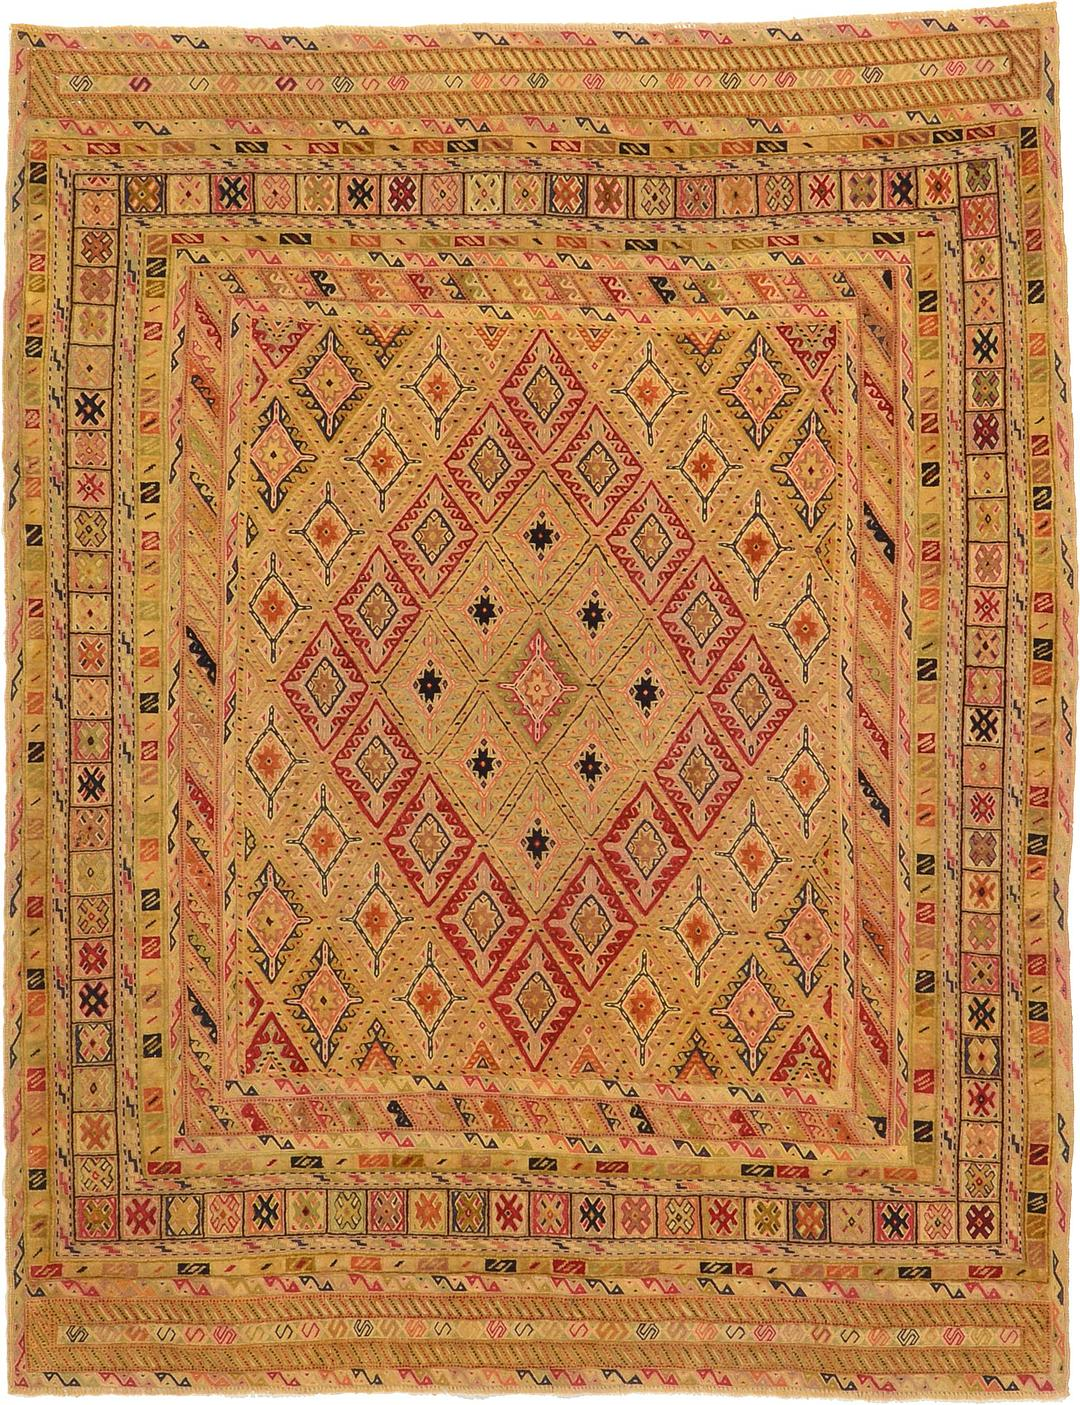 Square area rugs 6x6 area rug 6x6 square traditional for 6x6 room design